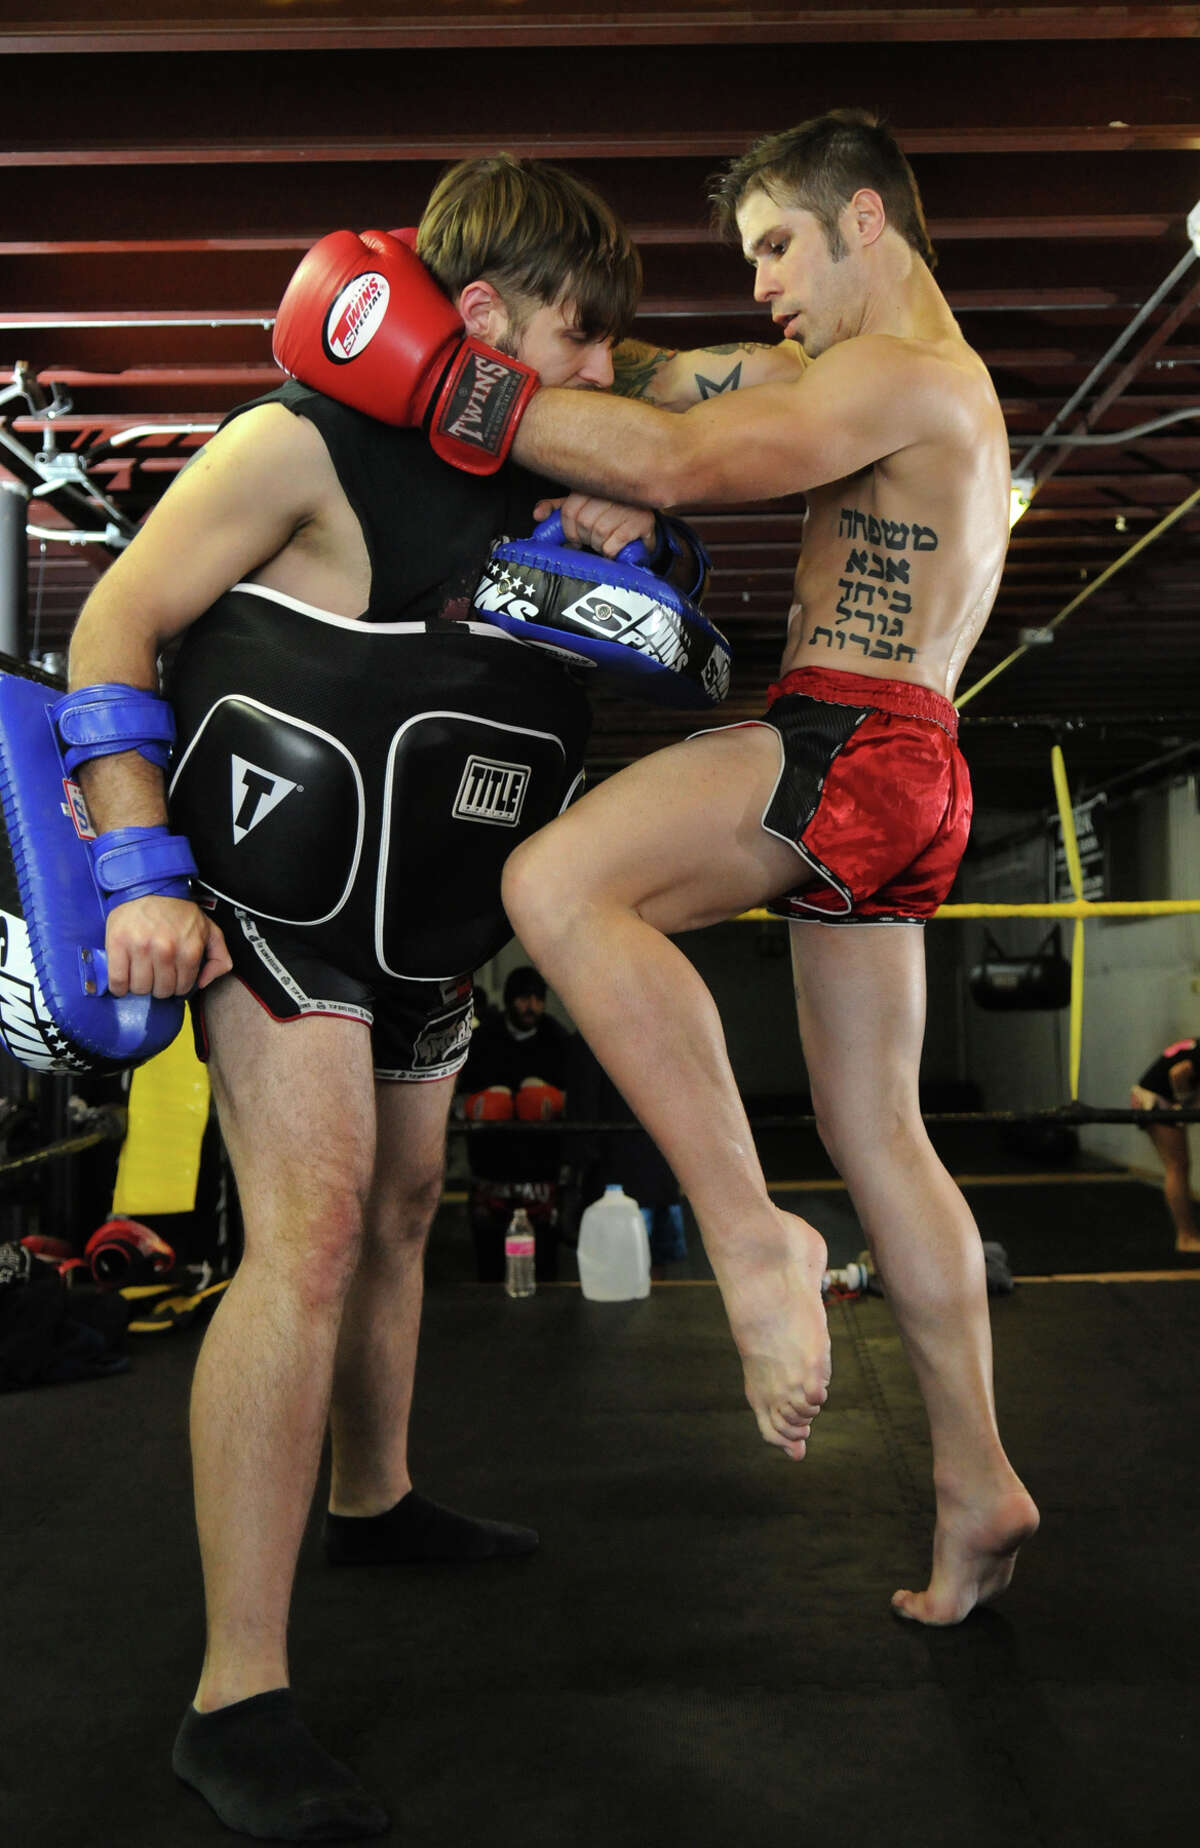 Sam Mongonia, 27, from right, spars with his brother, Nate, 28, during a training session at Revolution Dojo.